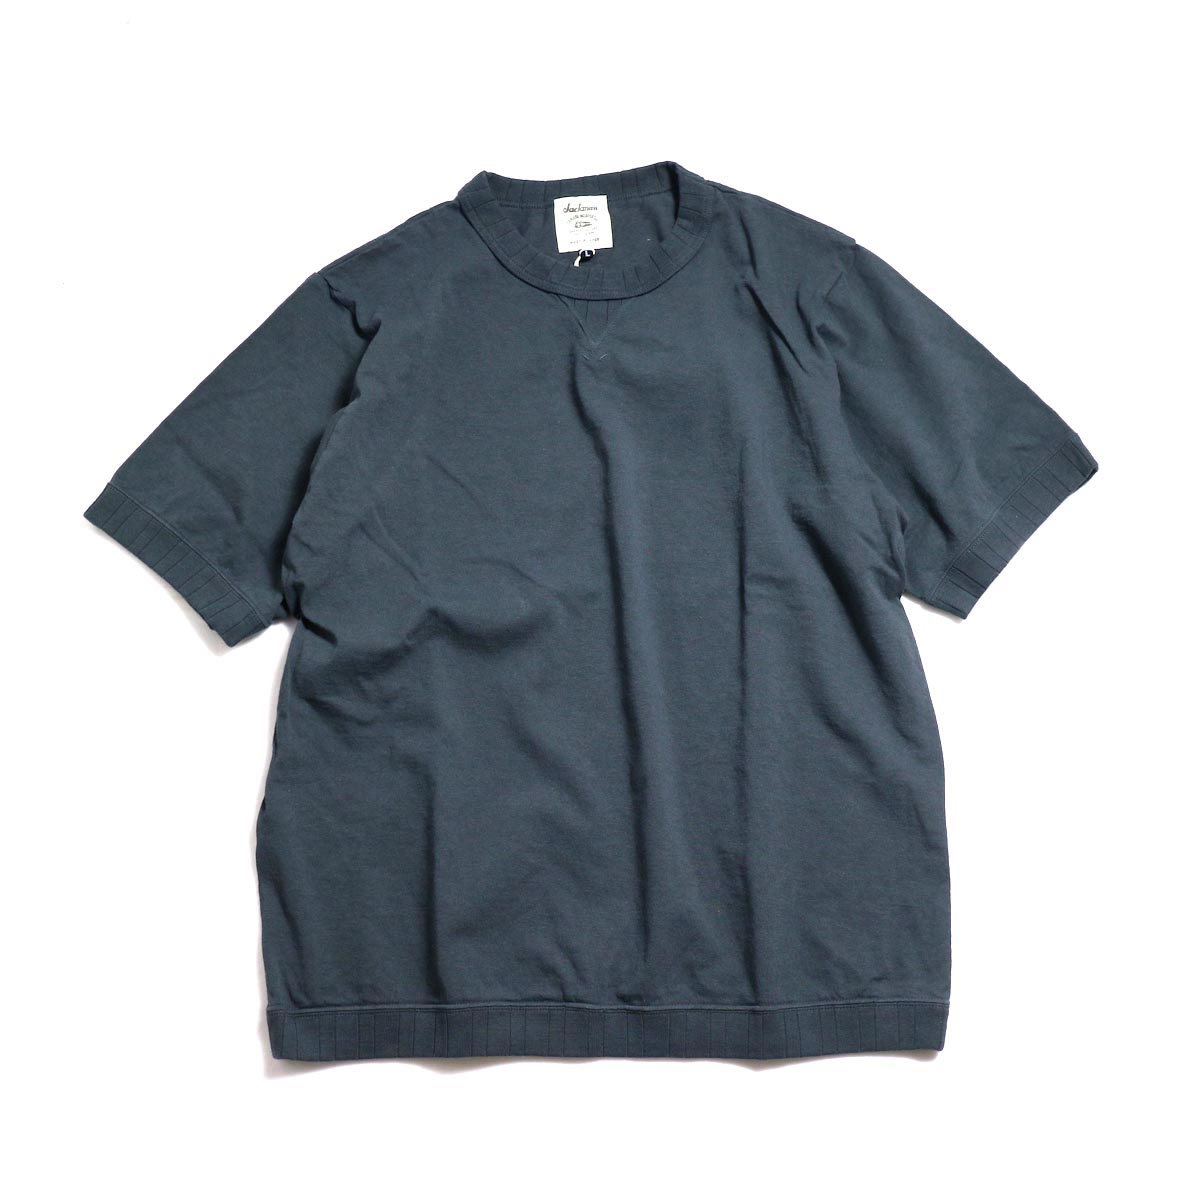 Jackman / Rib T-Shirt -Dark Gray